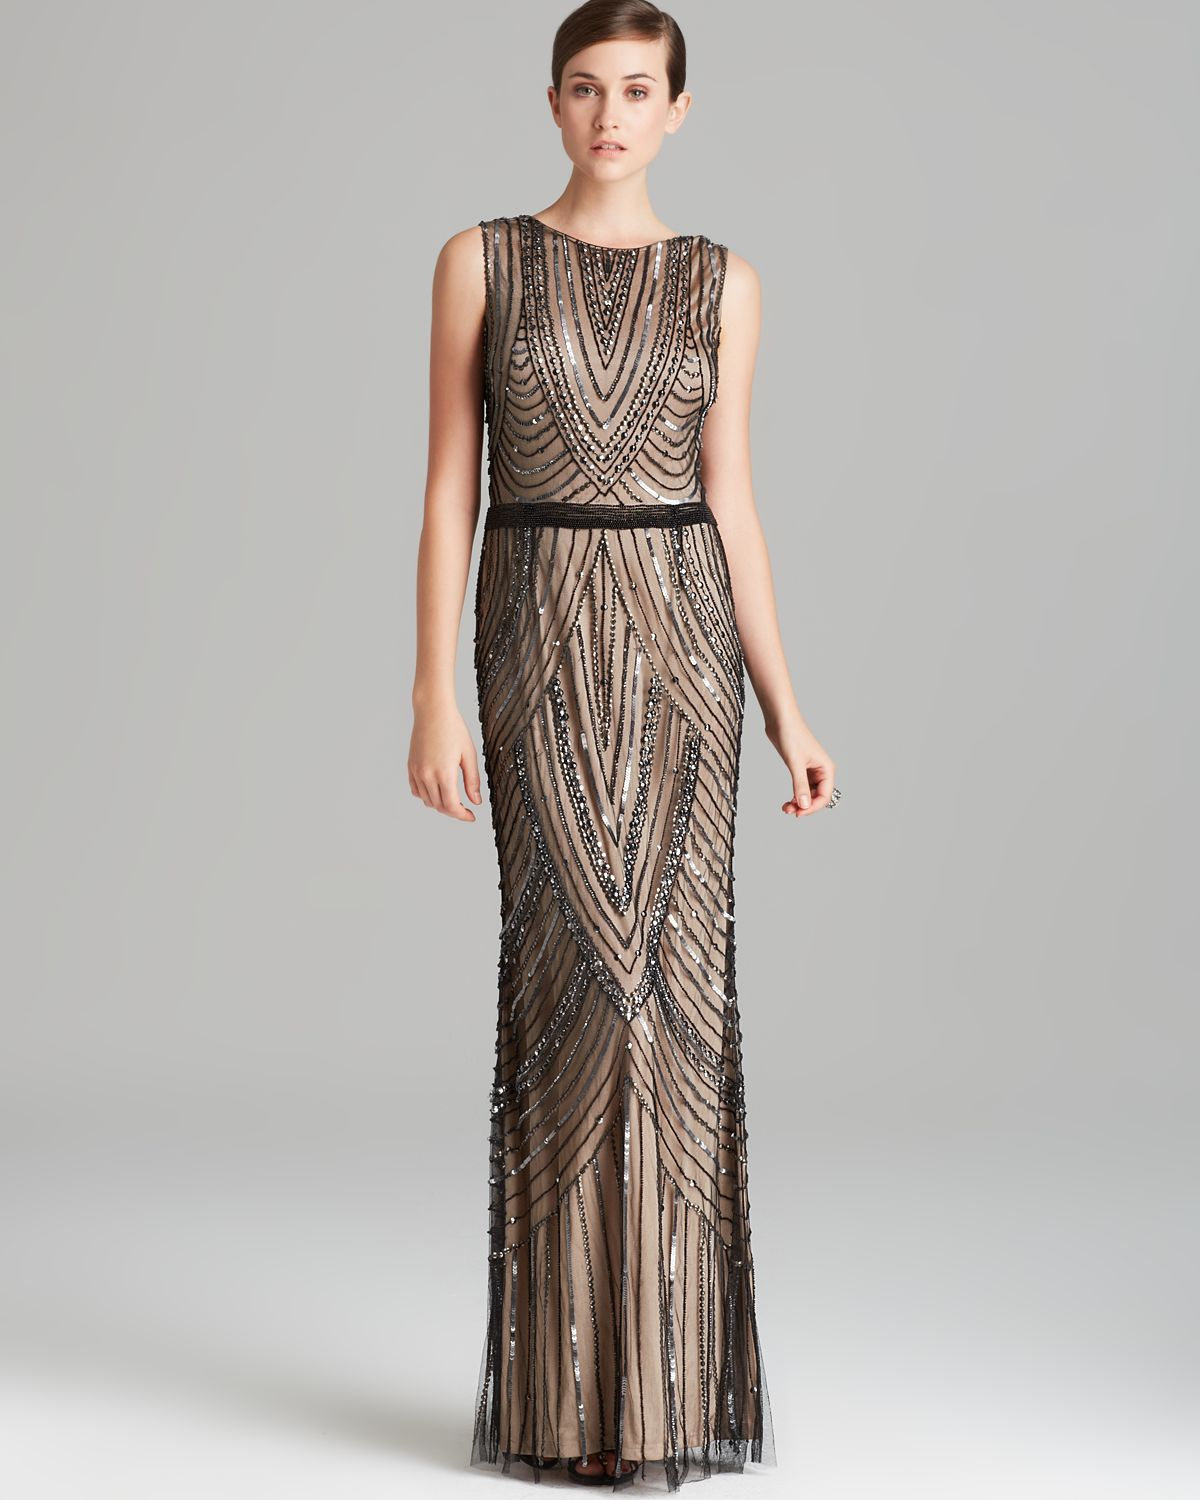 Adrianna Papell Gown  Sleeveless Beaded in Natural  Lyst